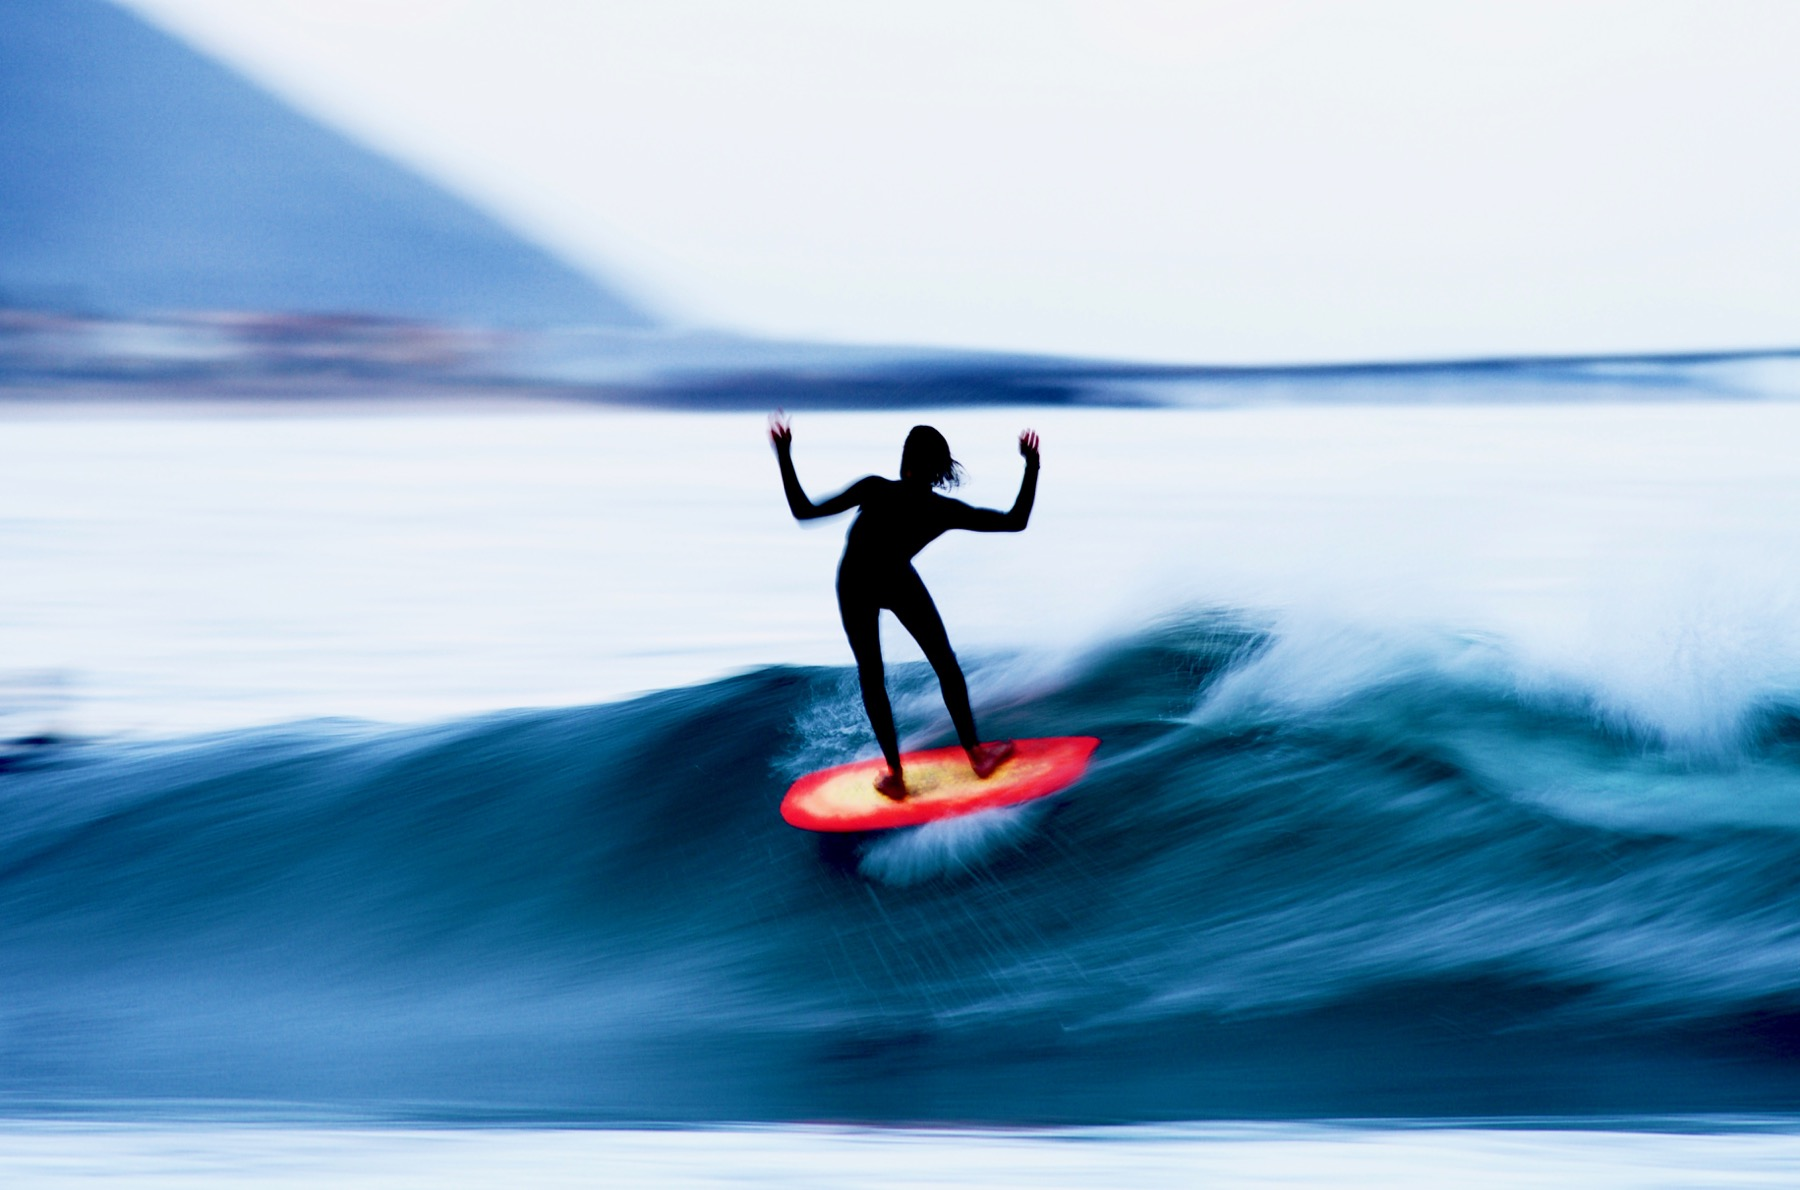 Morgans slow shutter work has inspired many aspiring surf photographers